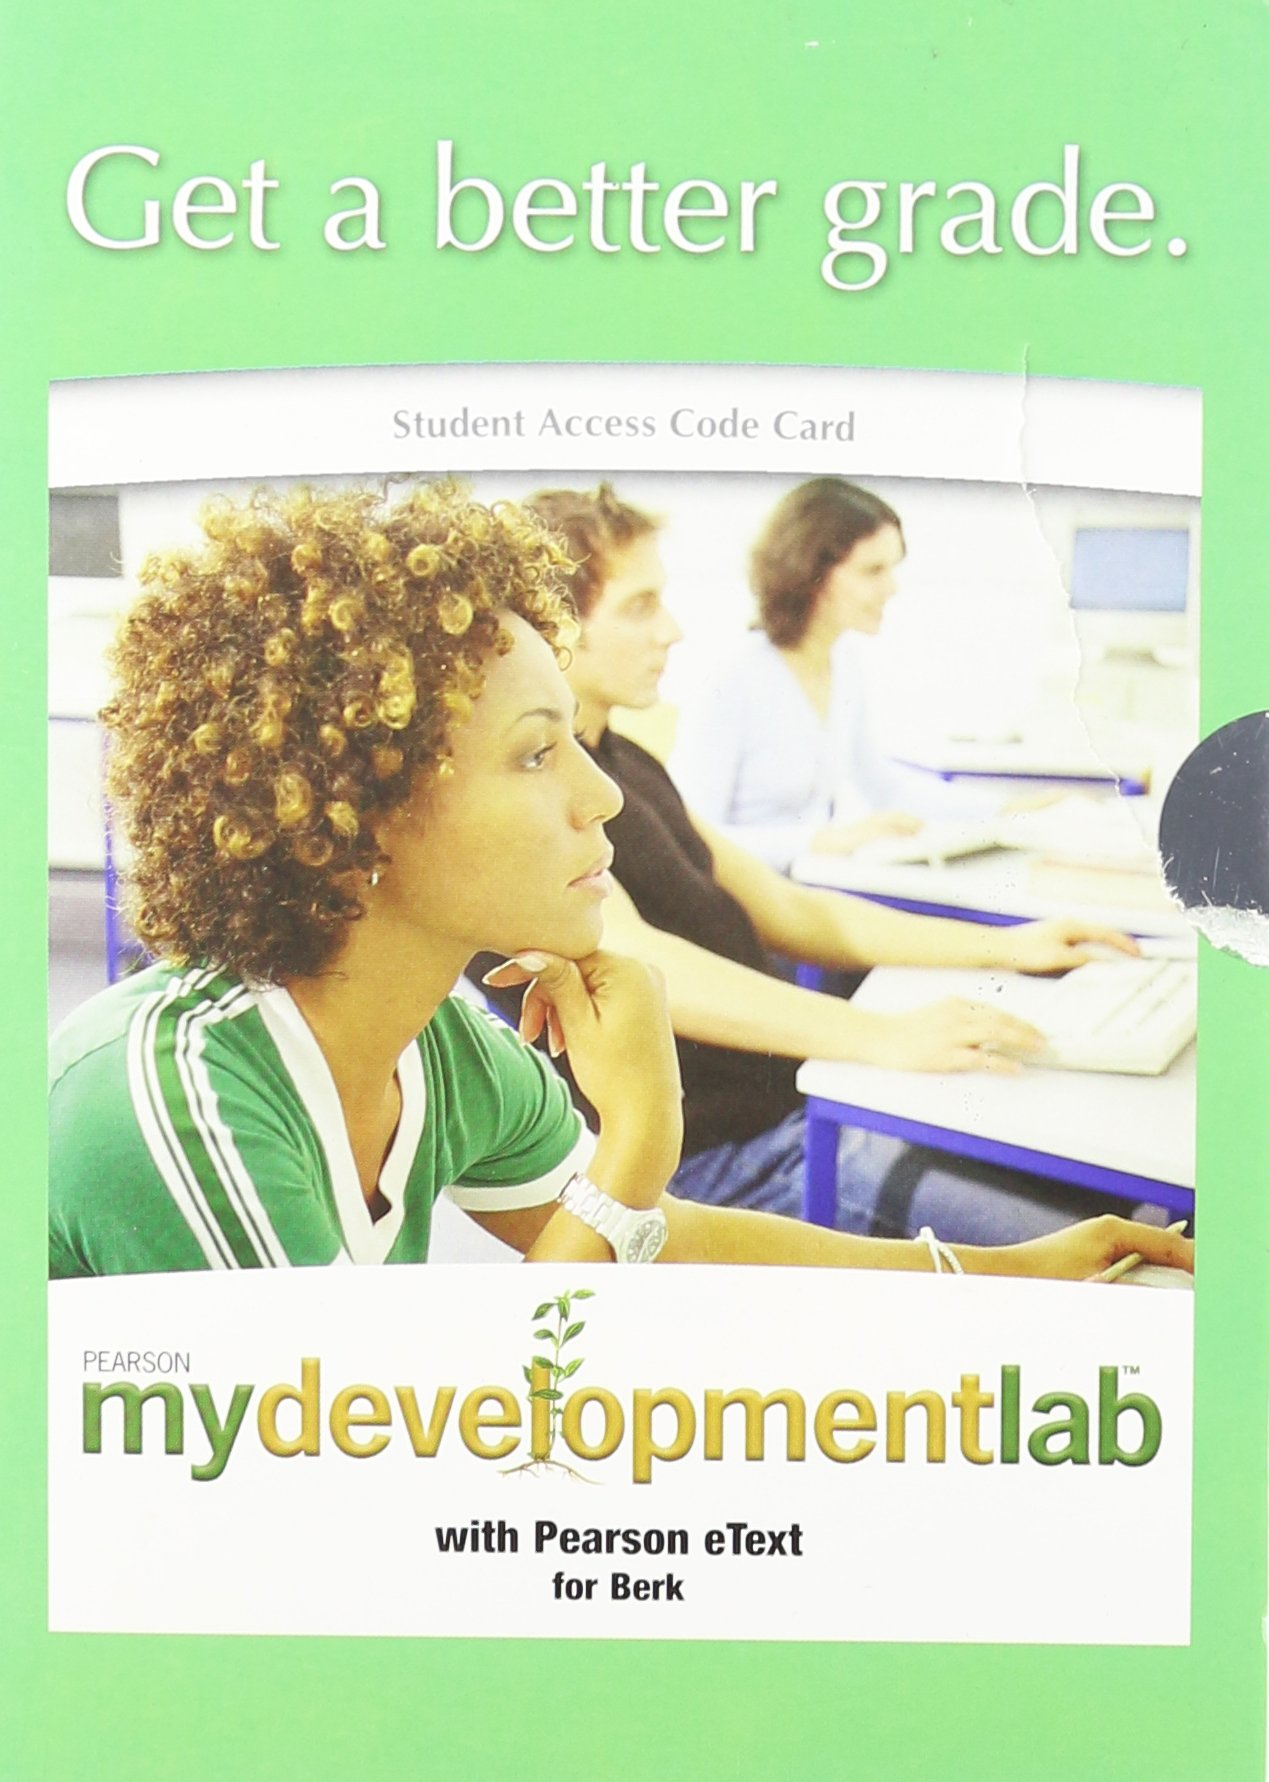 My development lab access code pearson etext for berk pearson my development lab access code pearson etext for berk pearson 9780205669110 amazon books fandeluxe Image collections